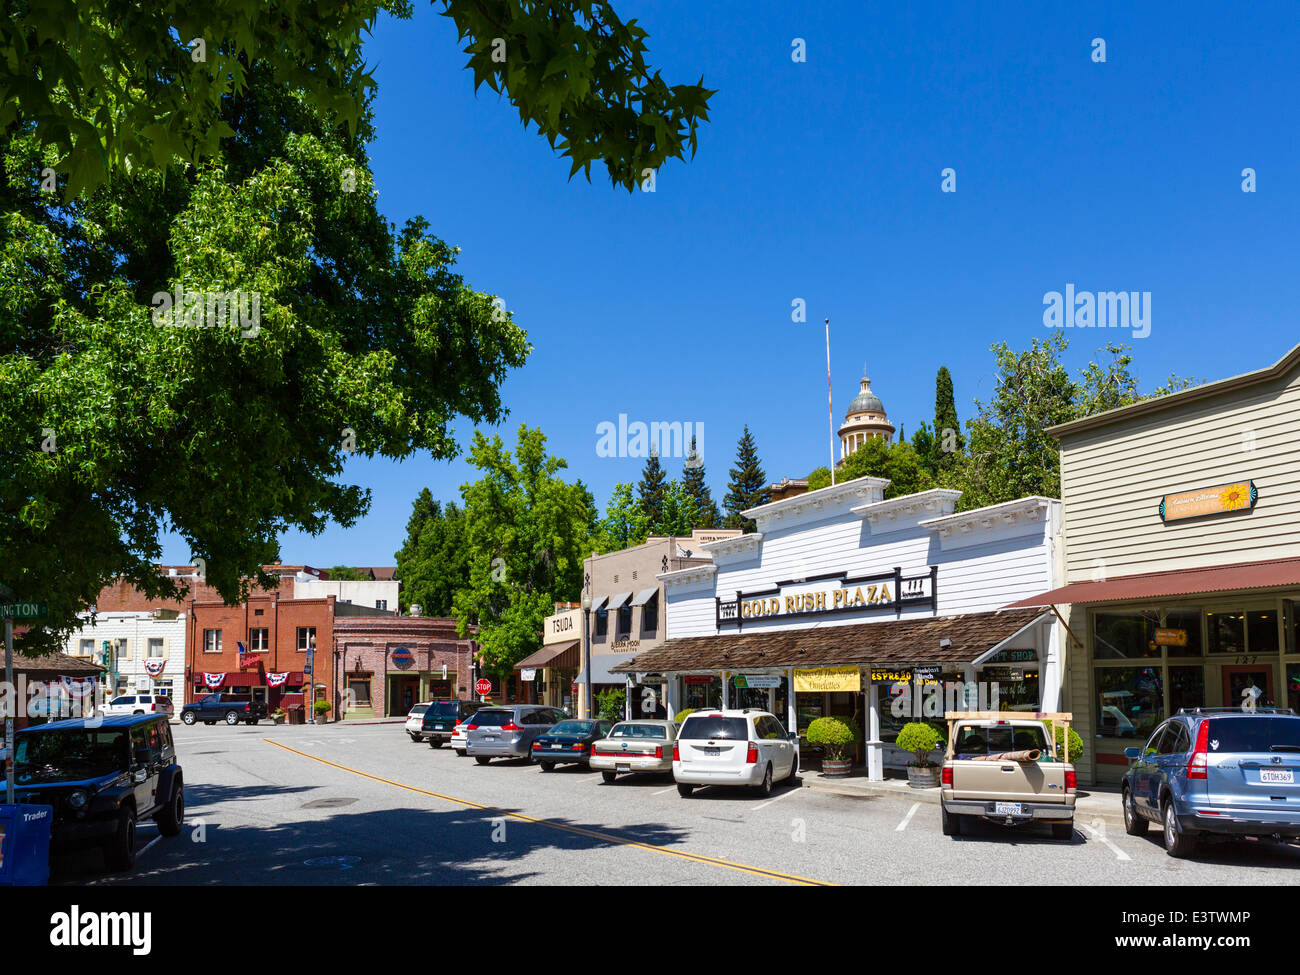 Sacramento Street in the old gold mining town of Auburn, Placer County, 'Mother Lode' Gold Country, California, - Stock Image